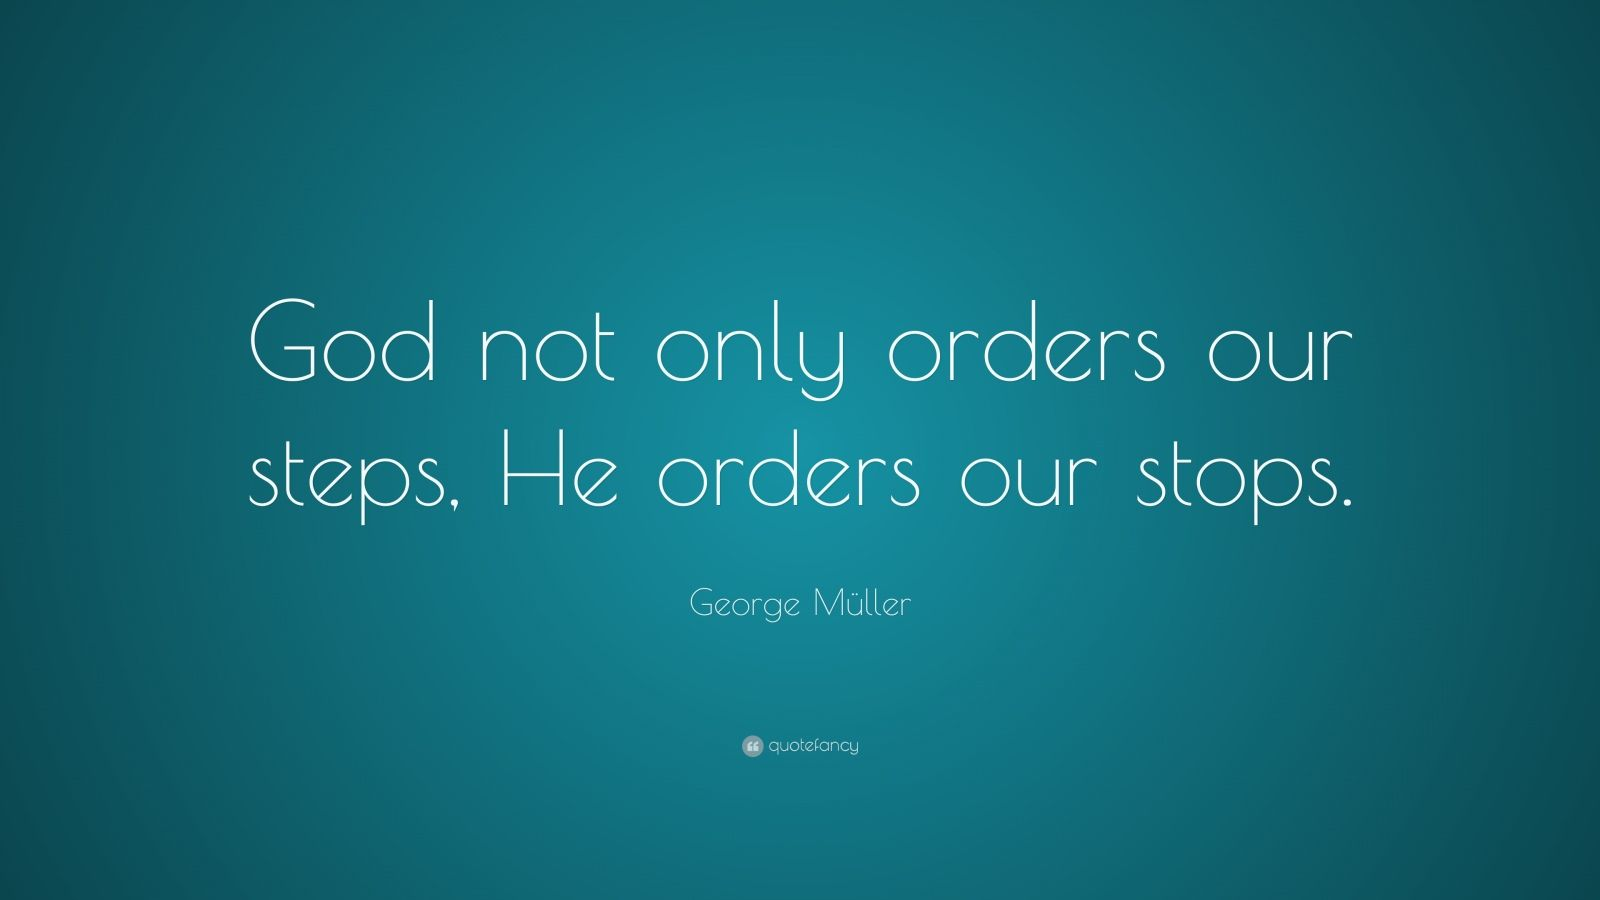 Steve Jobs Wallpaper Quotes George M 252 Ller Quote God Not Only Orders Our Steps He